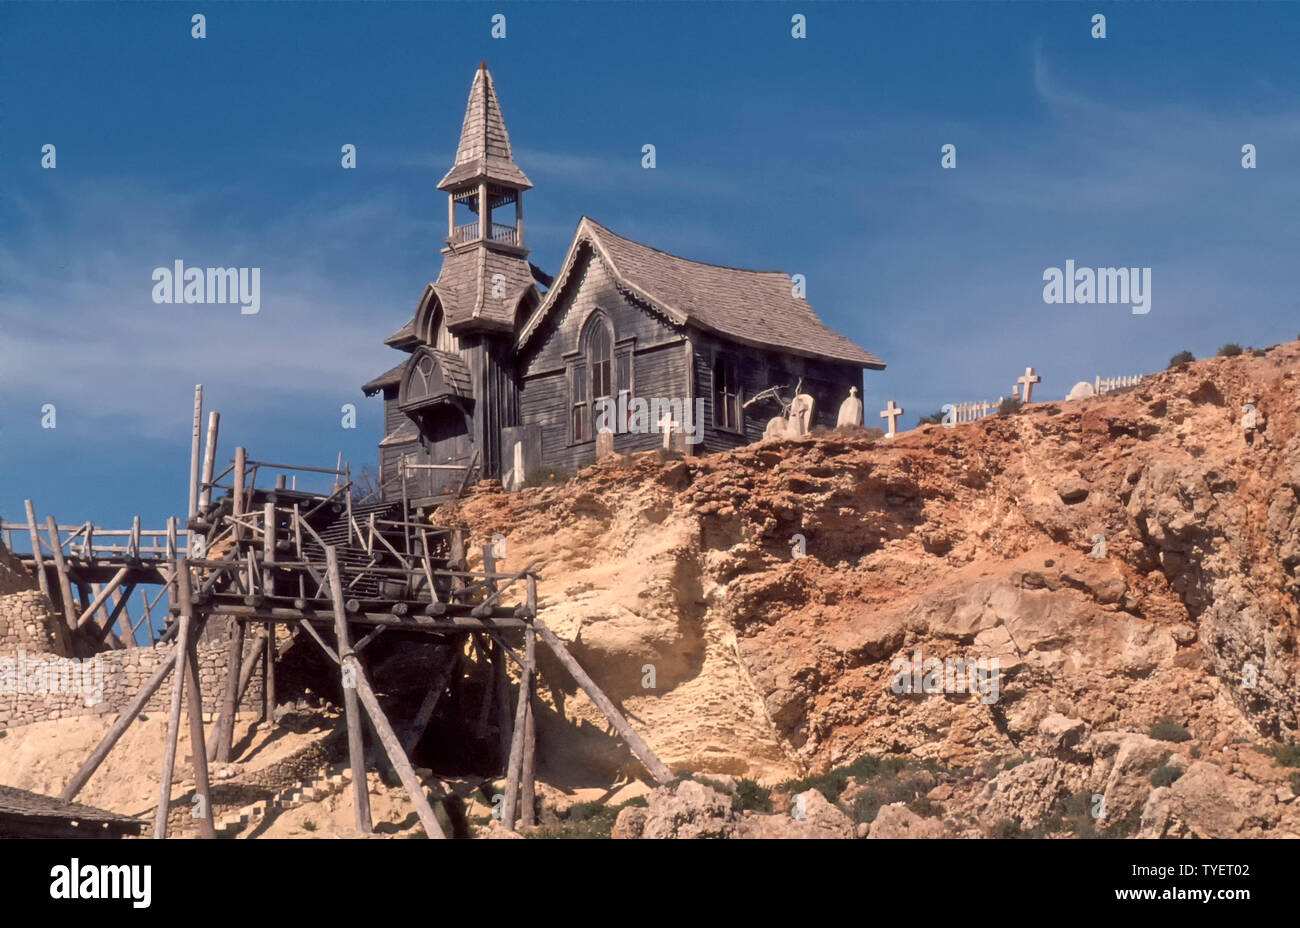 Archive 1980s close up  abandoned wooden film set church building with tower & graveyard on cliff top from 1980 Popeye film Anchor Bay Village Malta - Stock Image